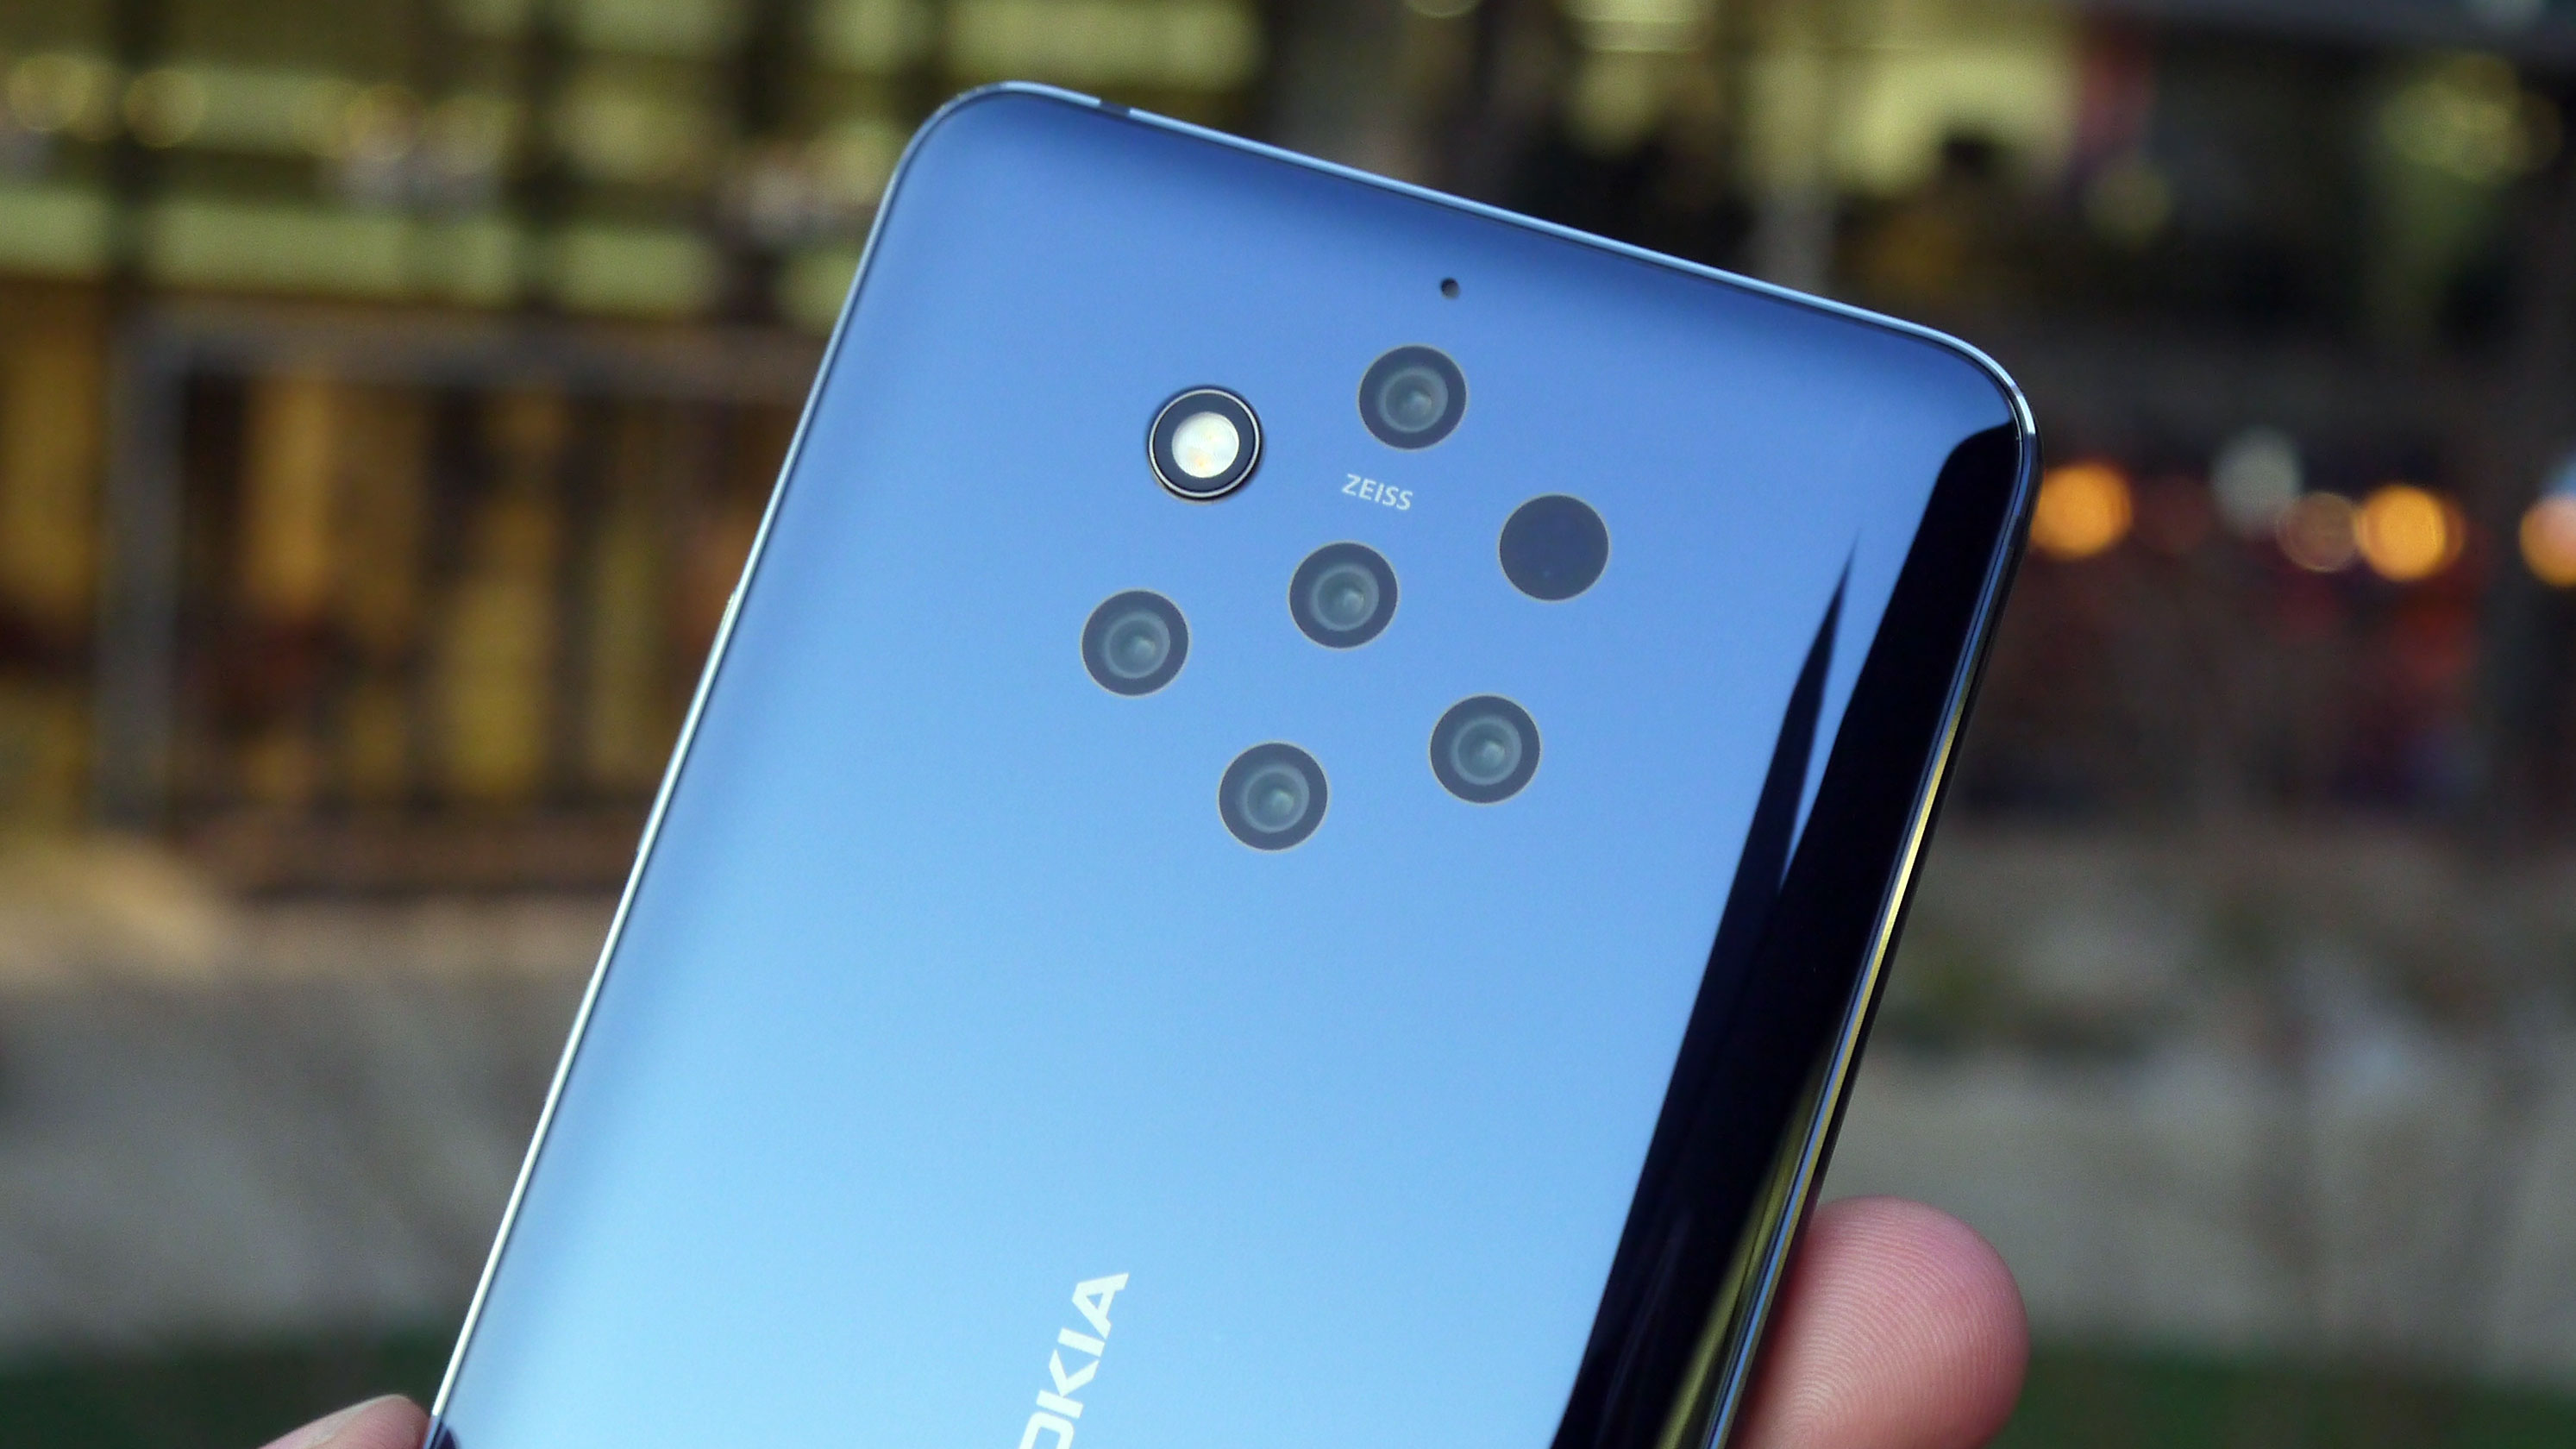 HMD Global's penta camera Nokia 9 PureView coming to UAE in